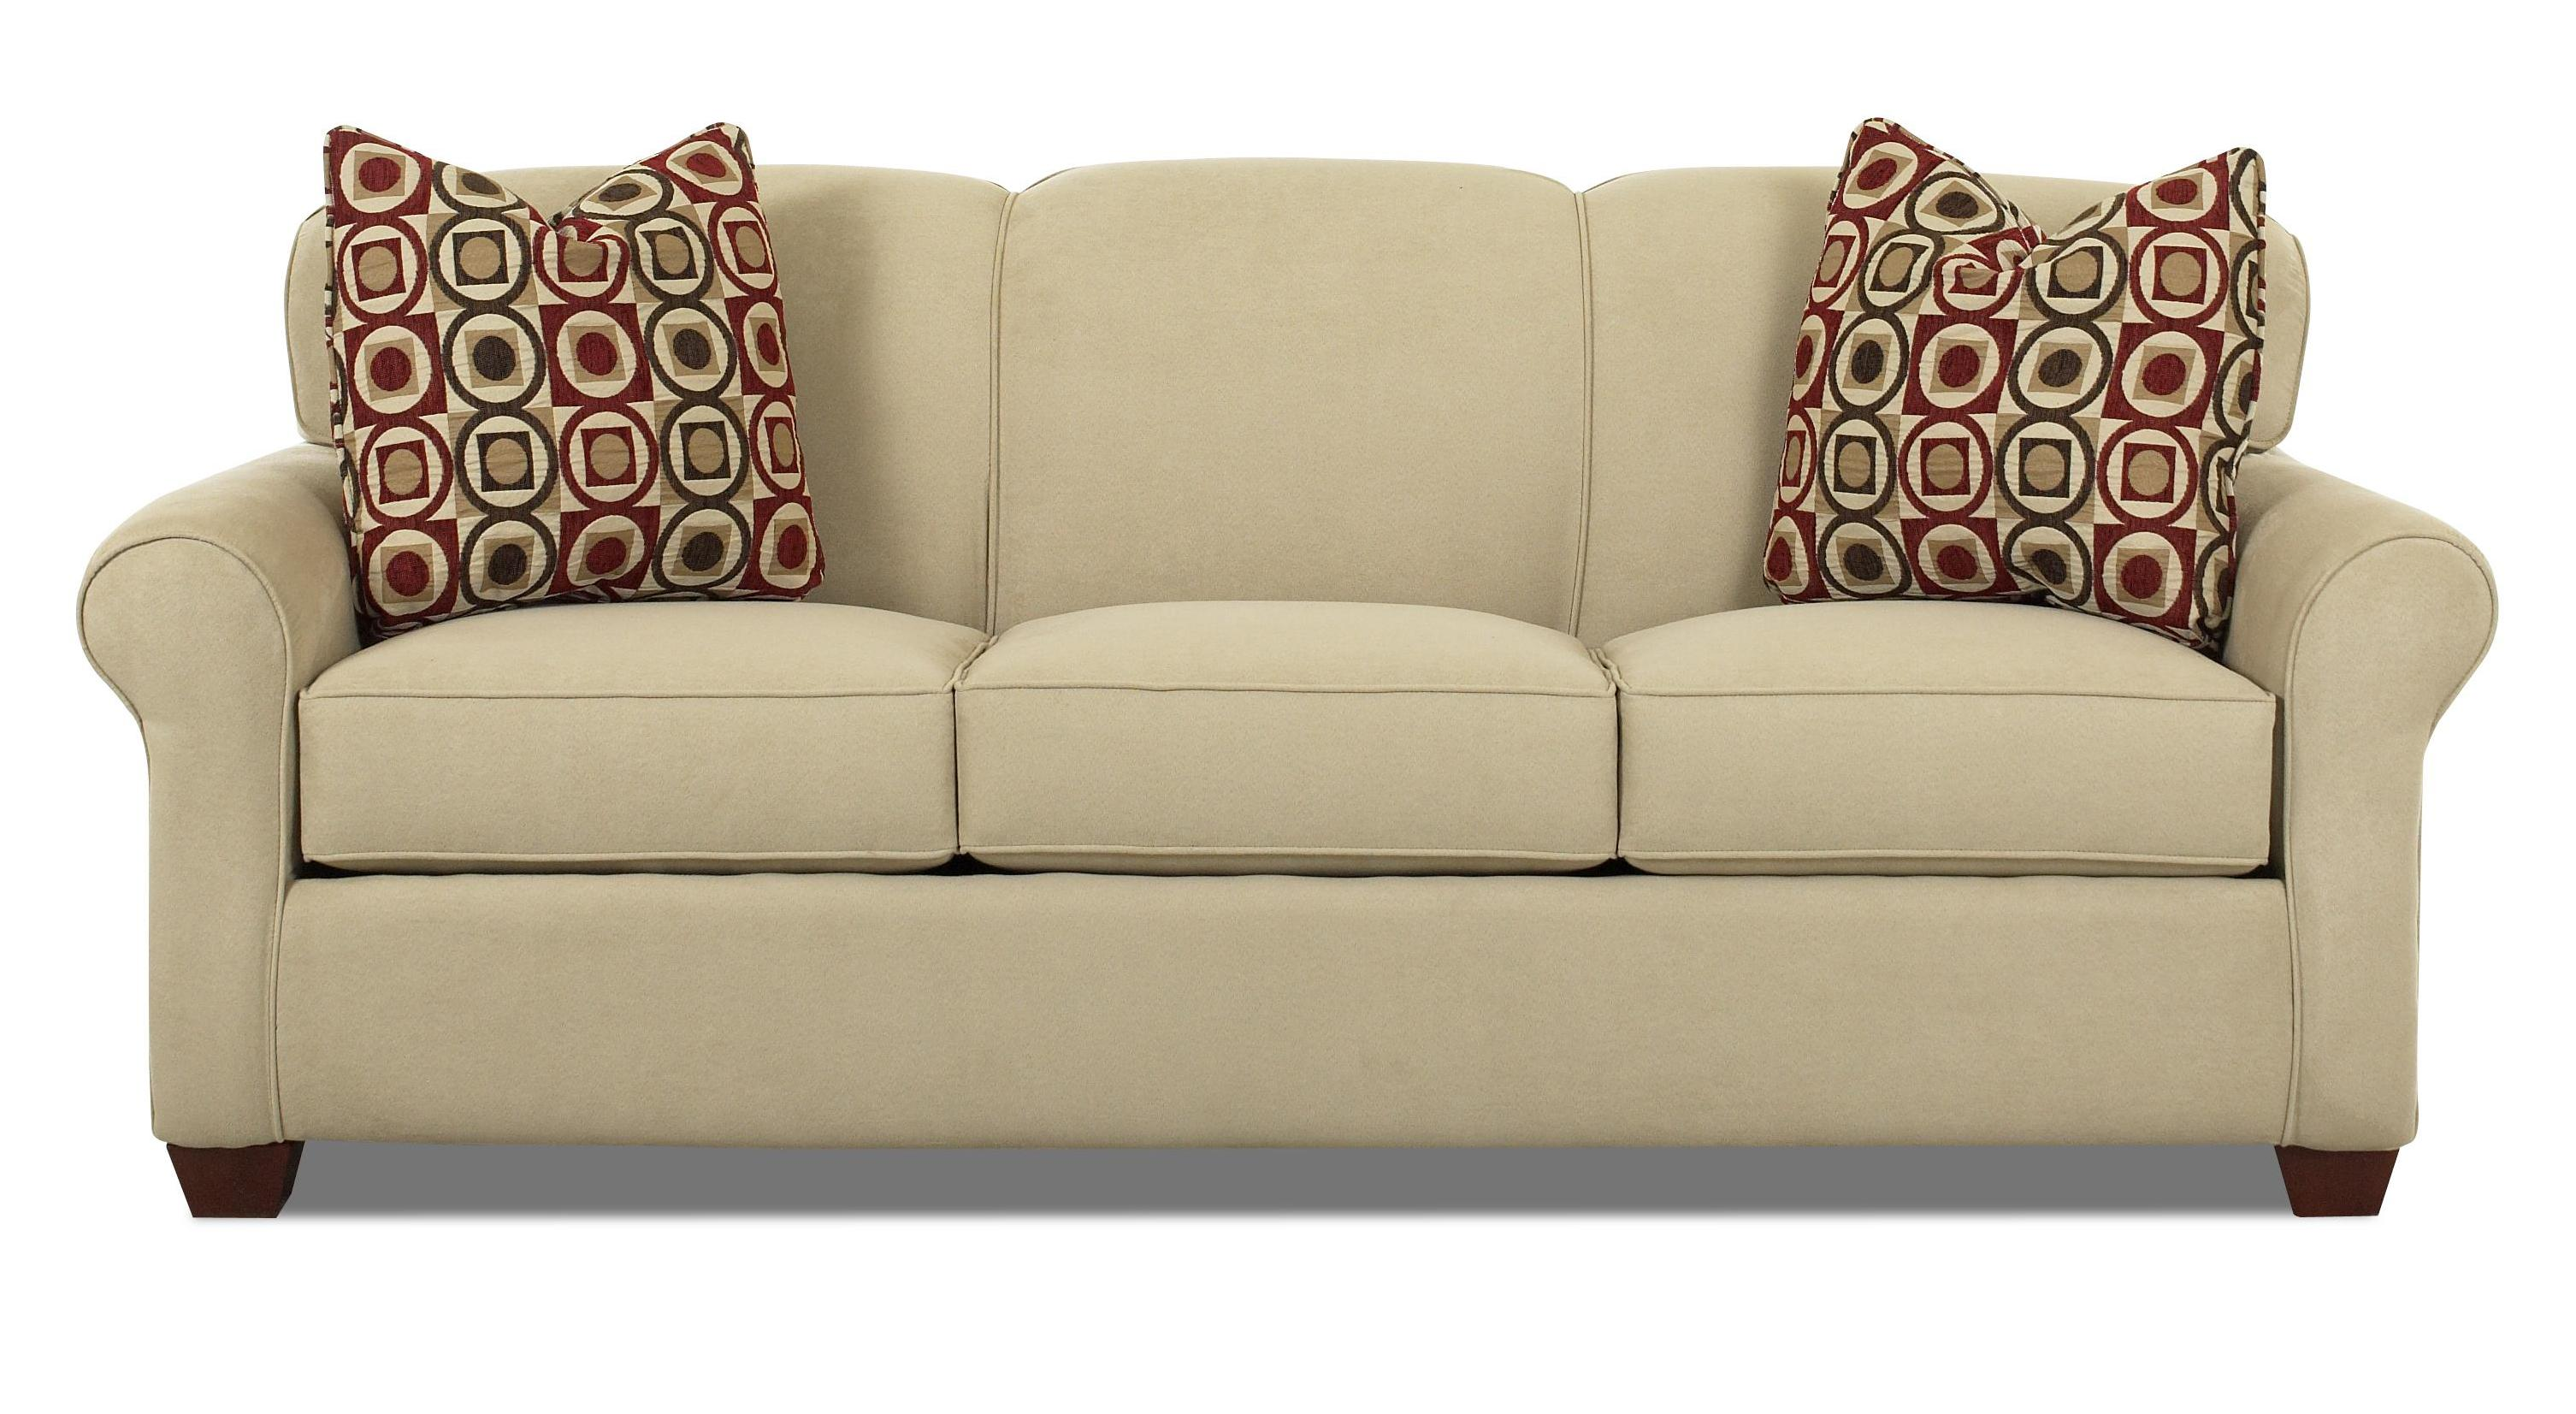 Klaussner Mayhew Stationary Sofa   Item Number: 97900S